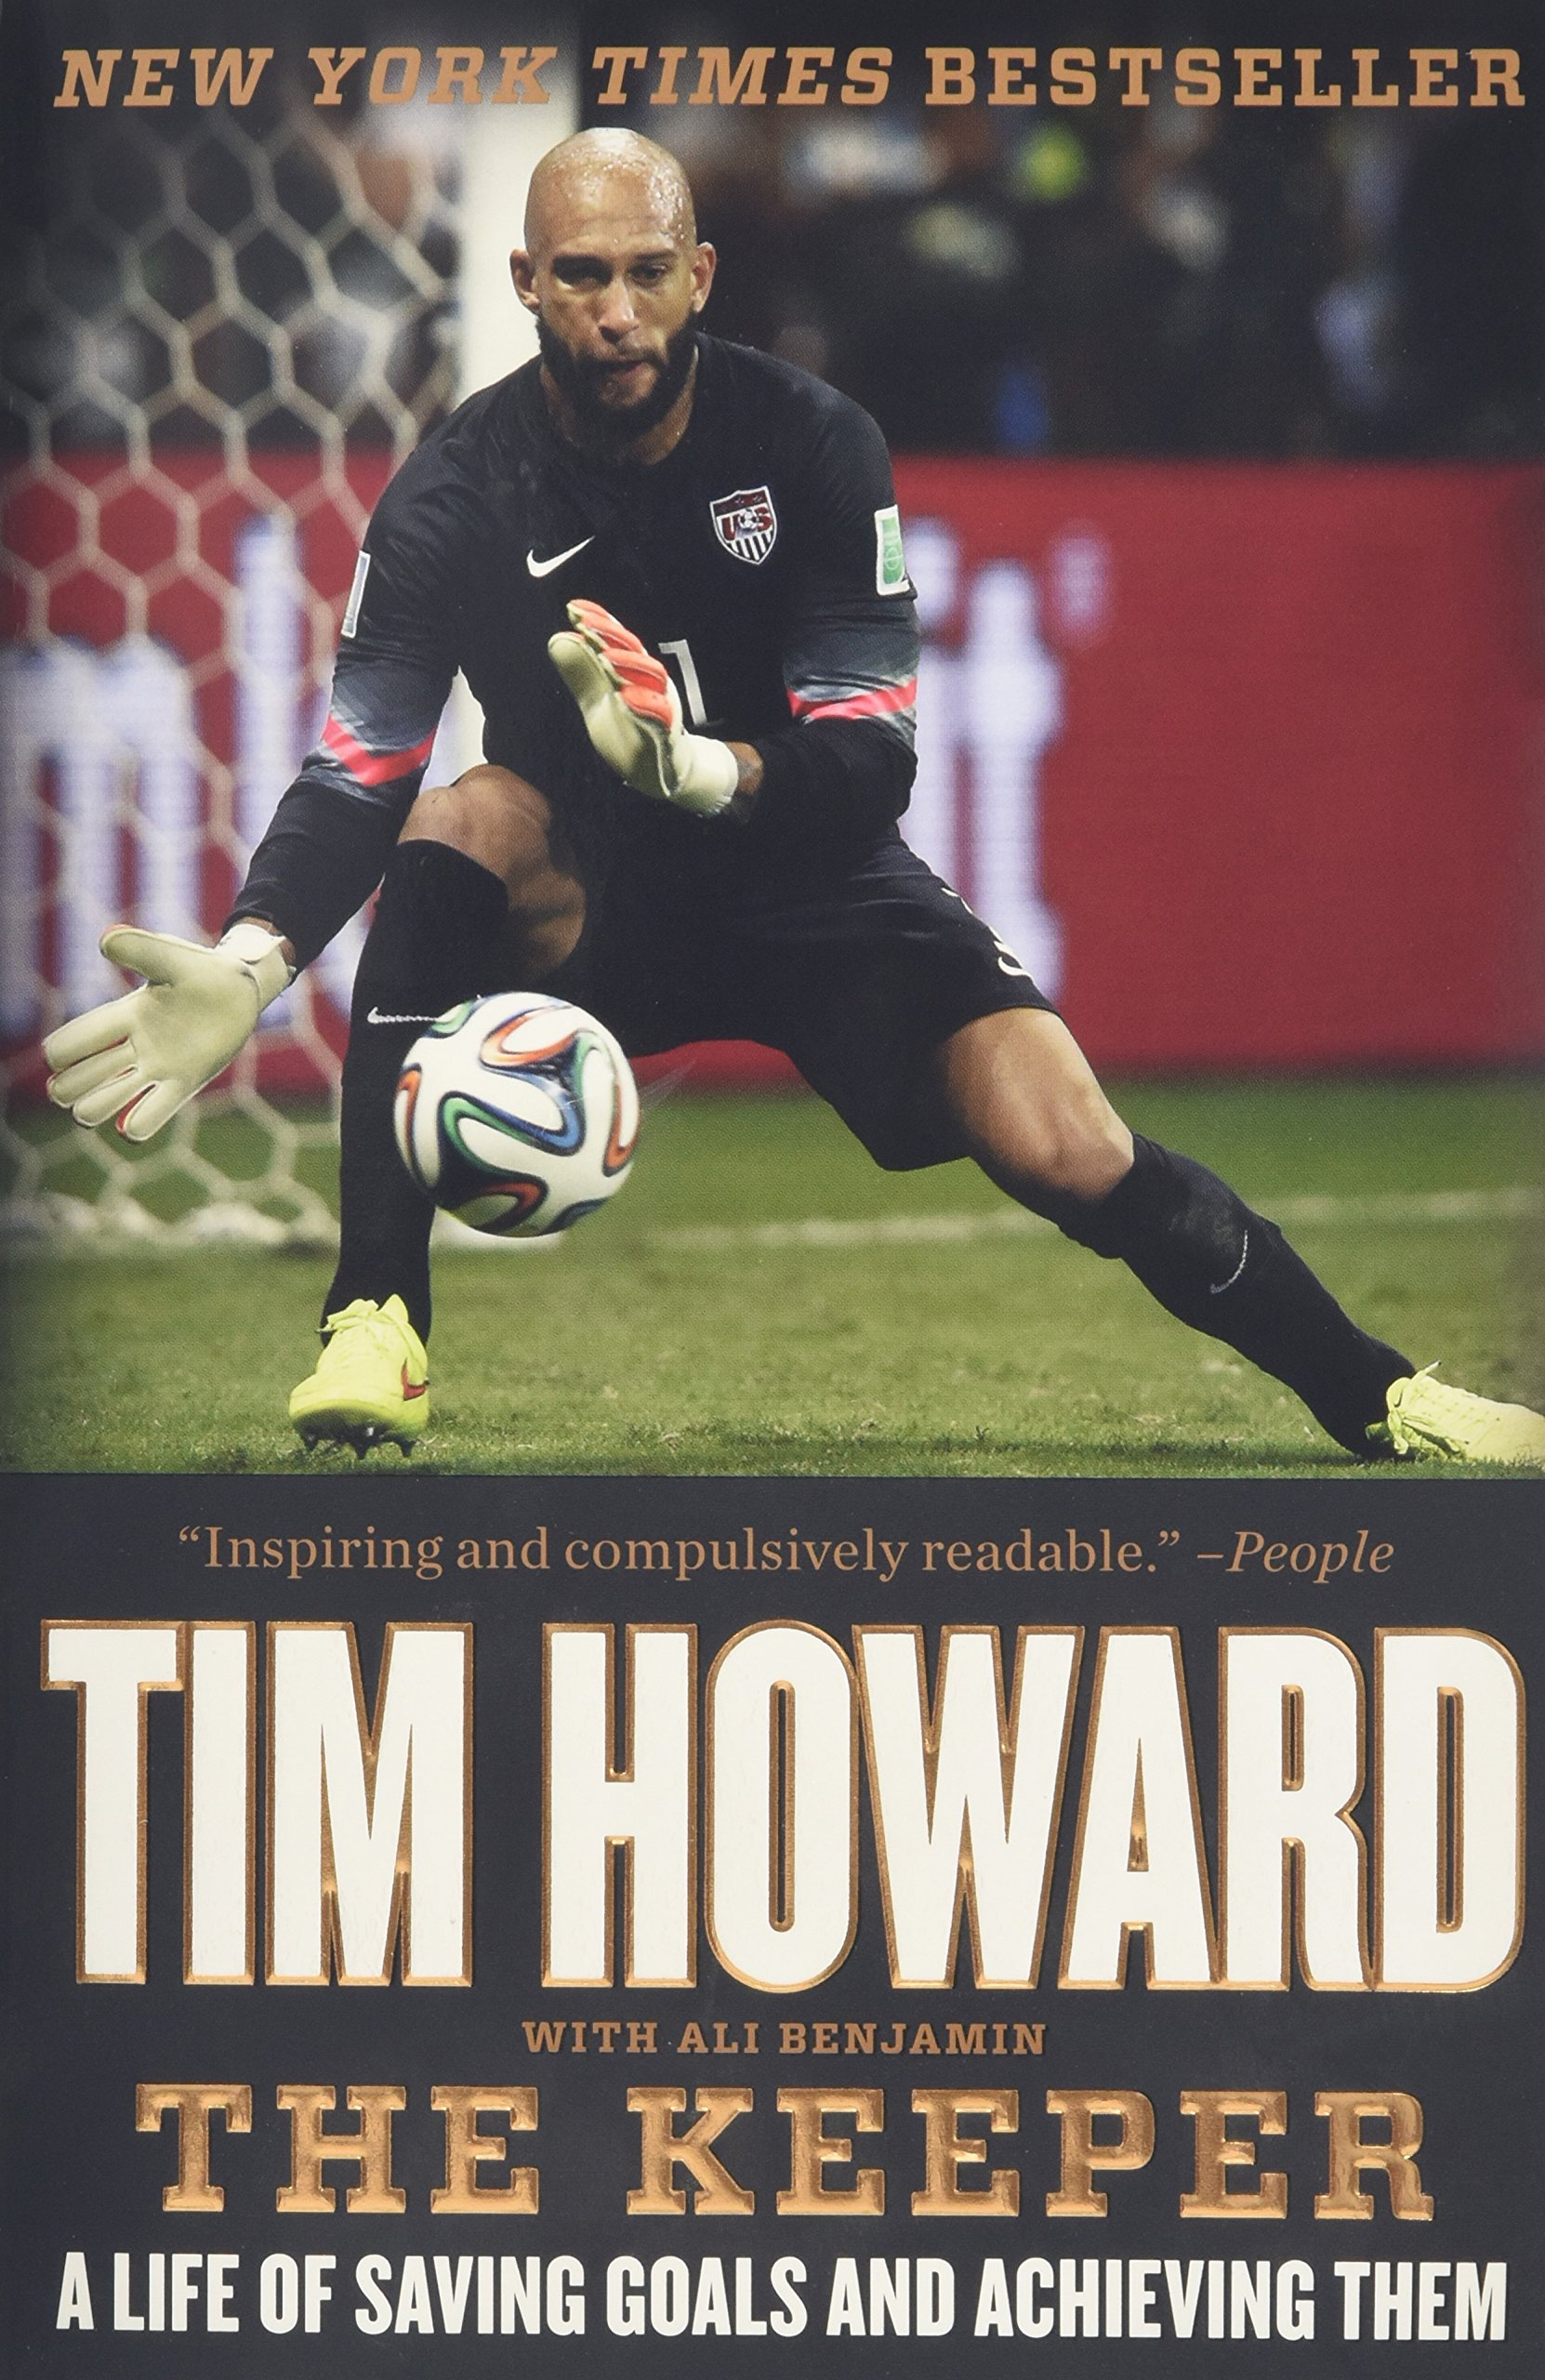 Amazon.com: The Keeper: A Life of Saving Goals and Achieving Them ...